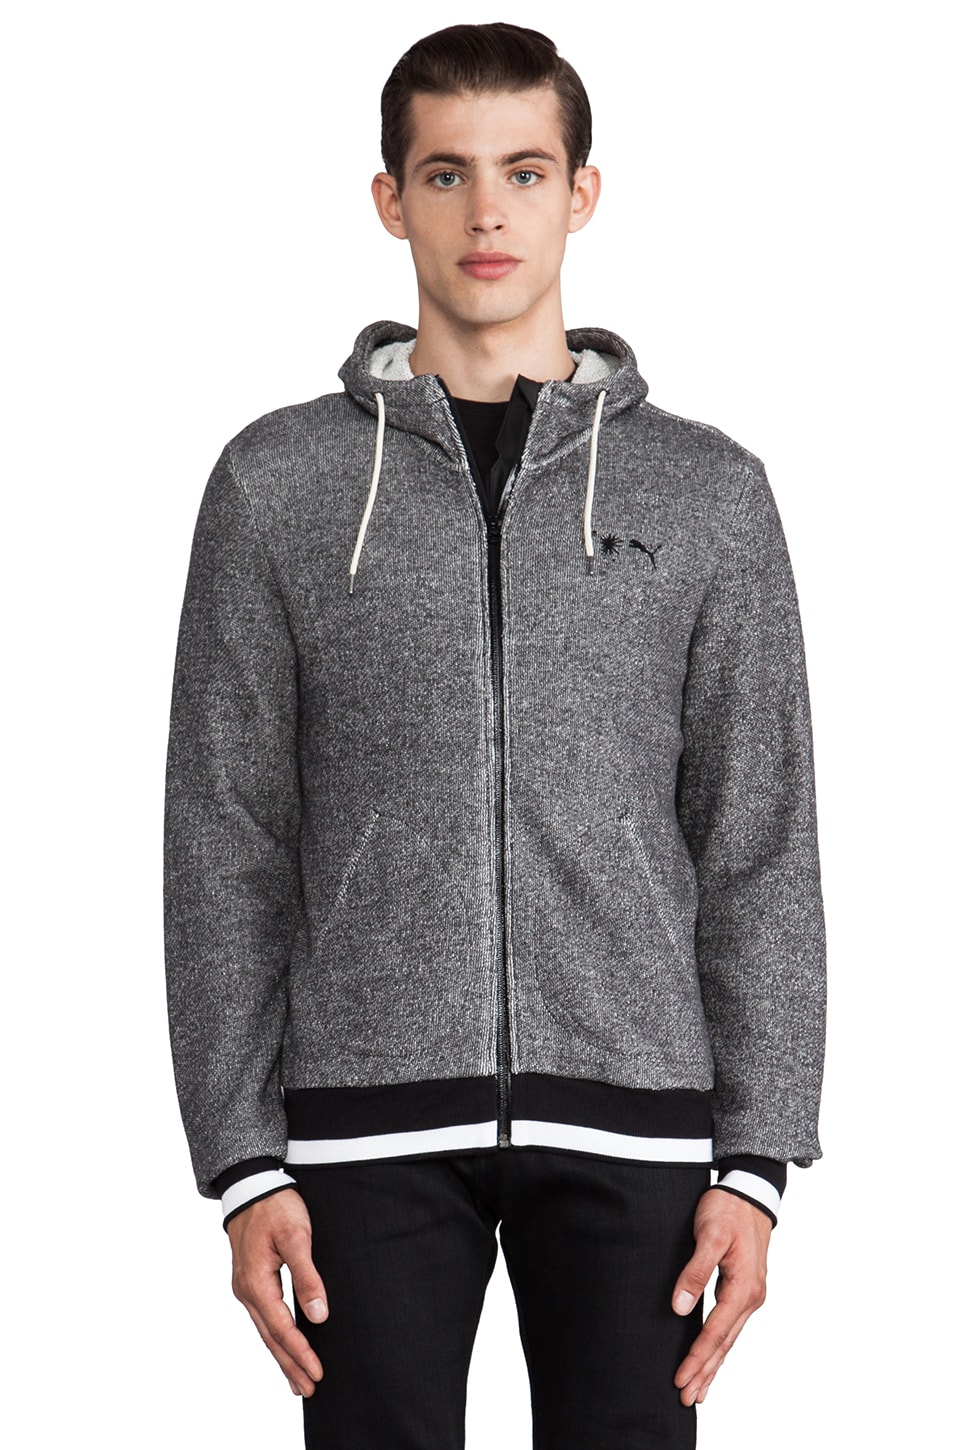 Puma by Mihara Hooded Sweat Jacket in Dark Gray Heather